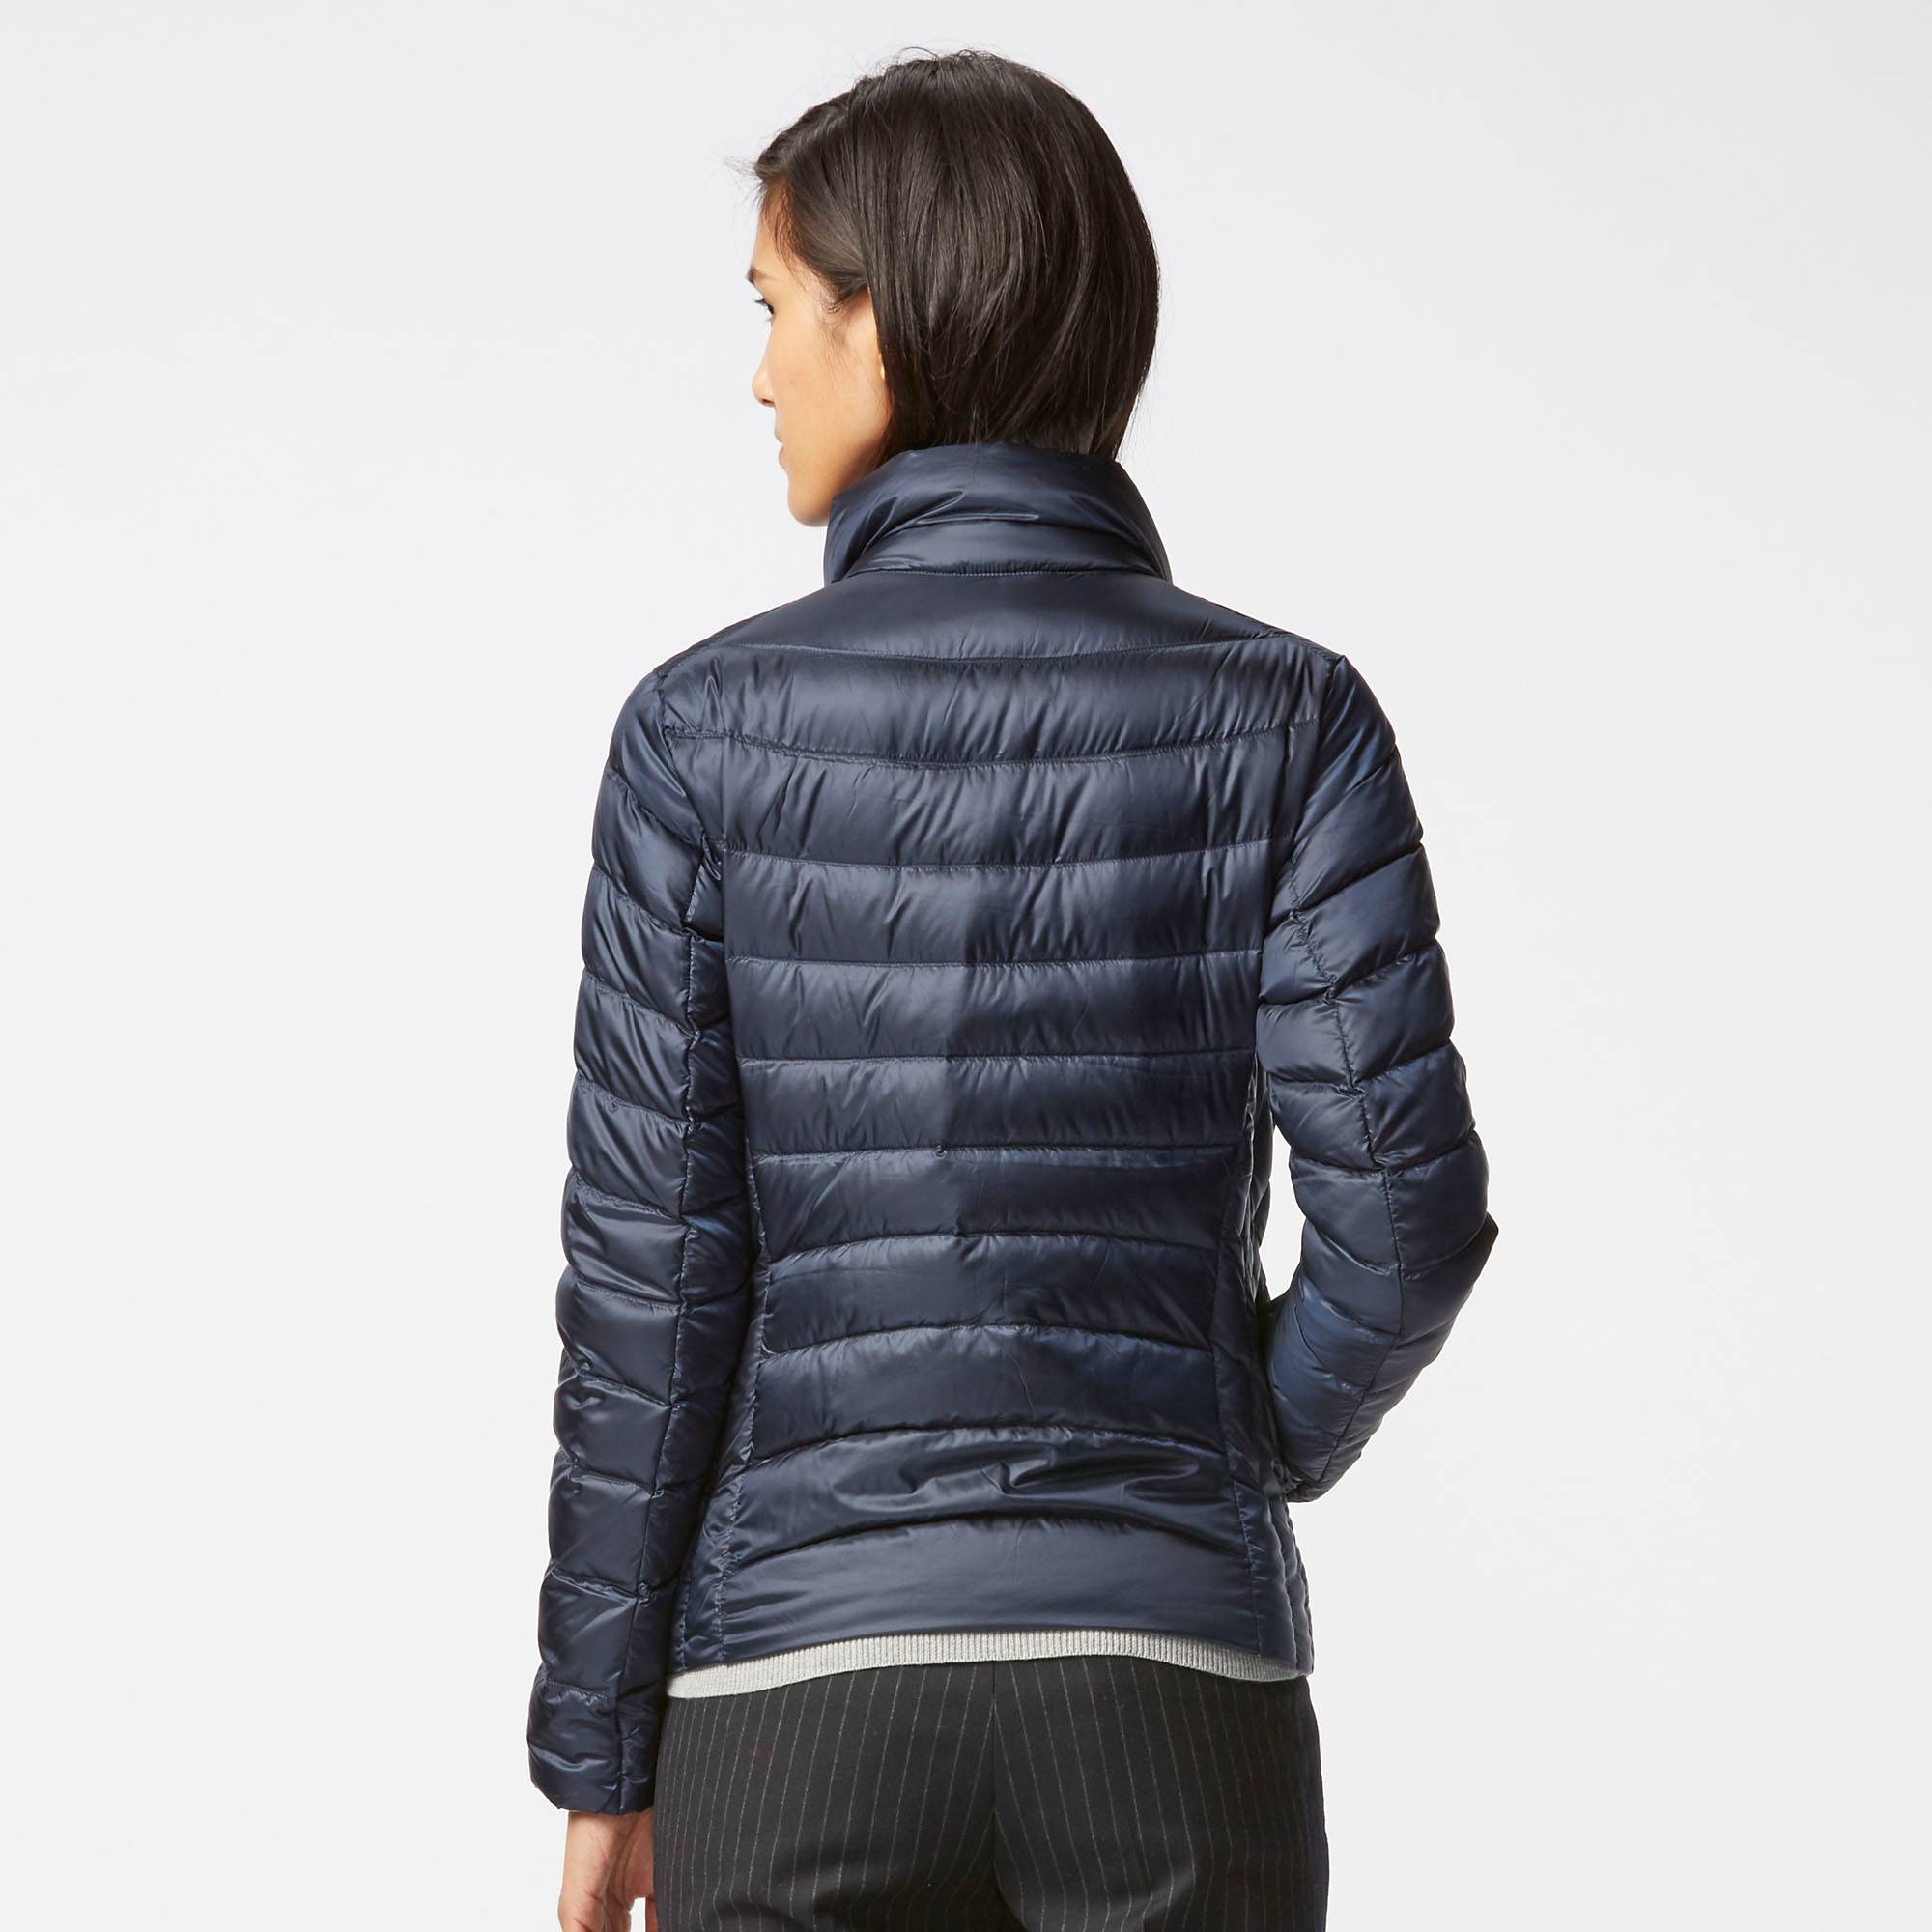 Uniqlo Down Jacket | Outdoor Jacket